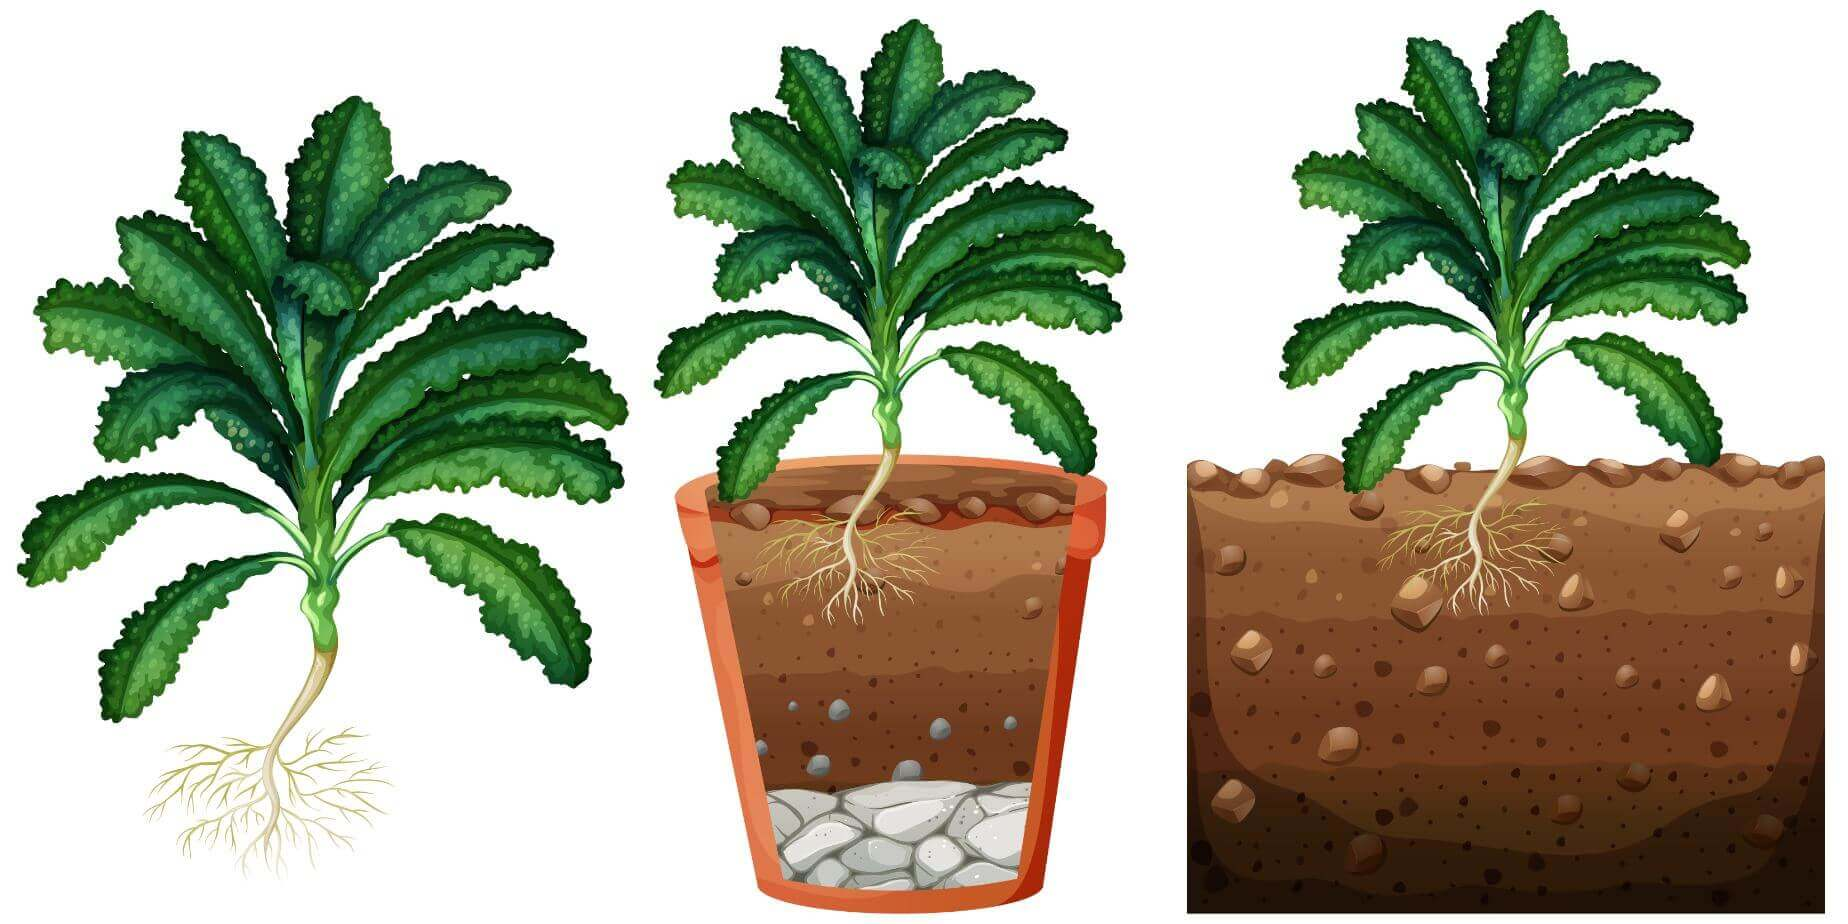 kale illustration planted in pot and soil